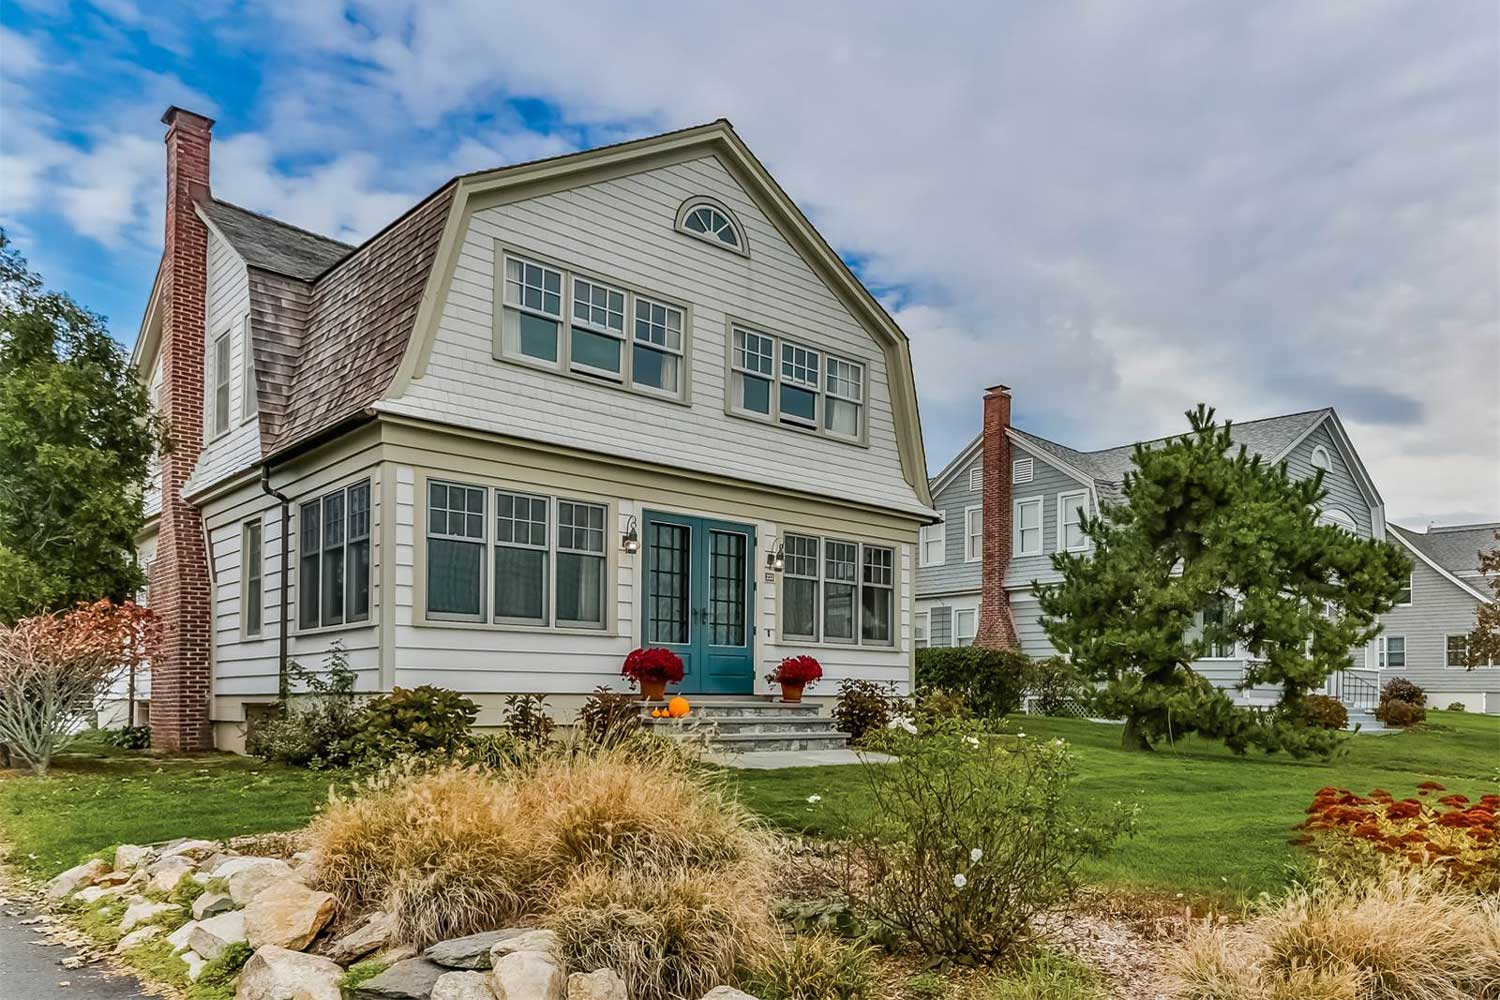 <b>Branford, Connecticut</b> <br/><i>4 Bedrooms, 2,512 sq. ft.</i> <br/>Colonial waterfront home with views of Long Island Sound